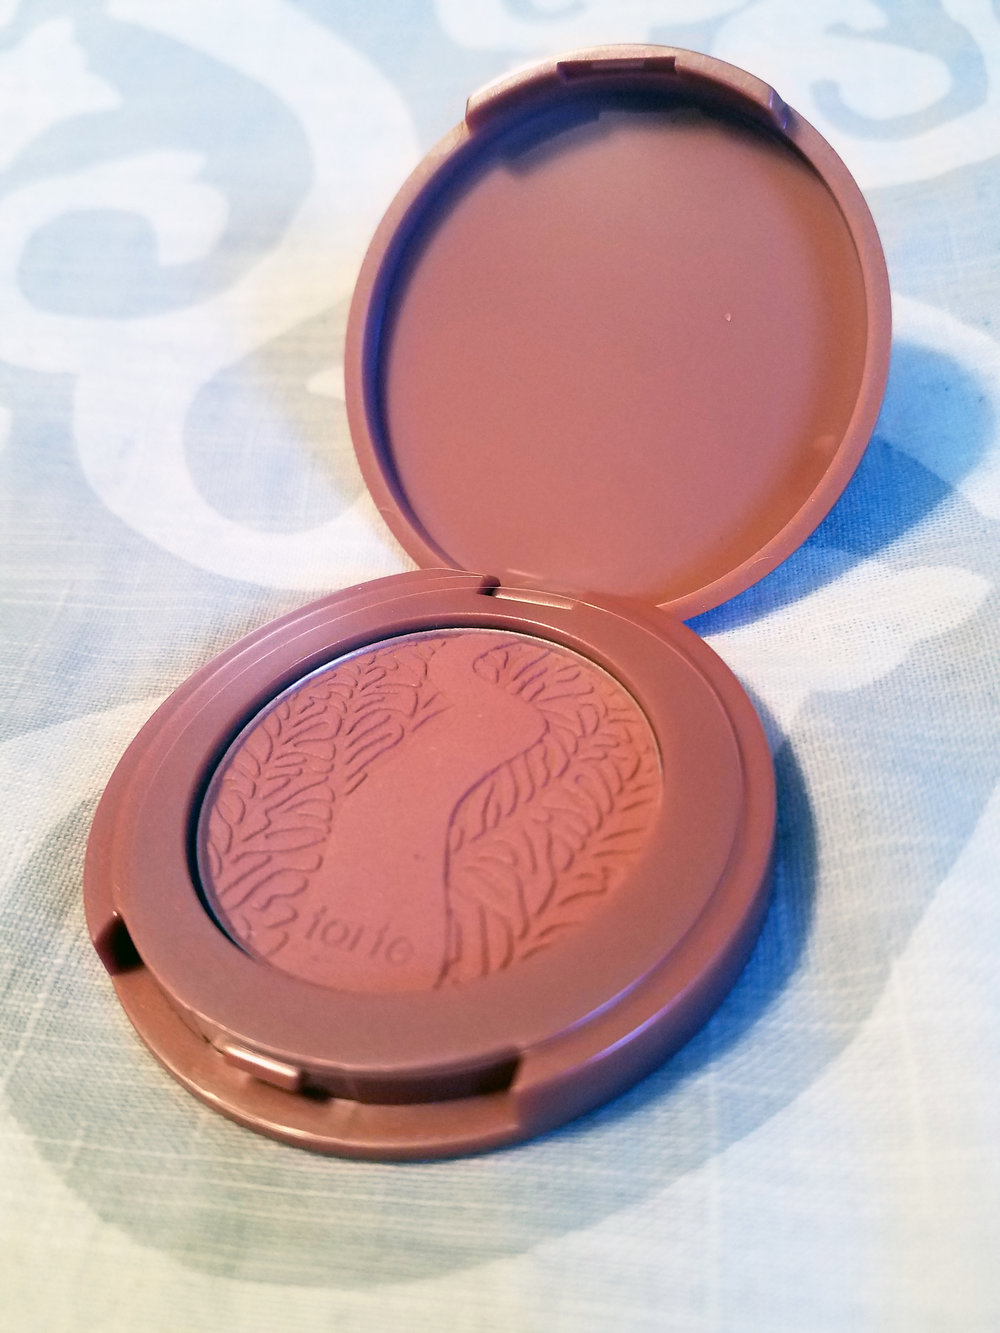 TARTE Deluxe Amazonian Clay 12-Hour Blush in Feisty, Quirky, or Idol